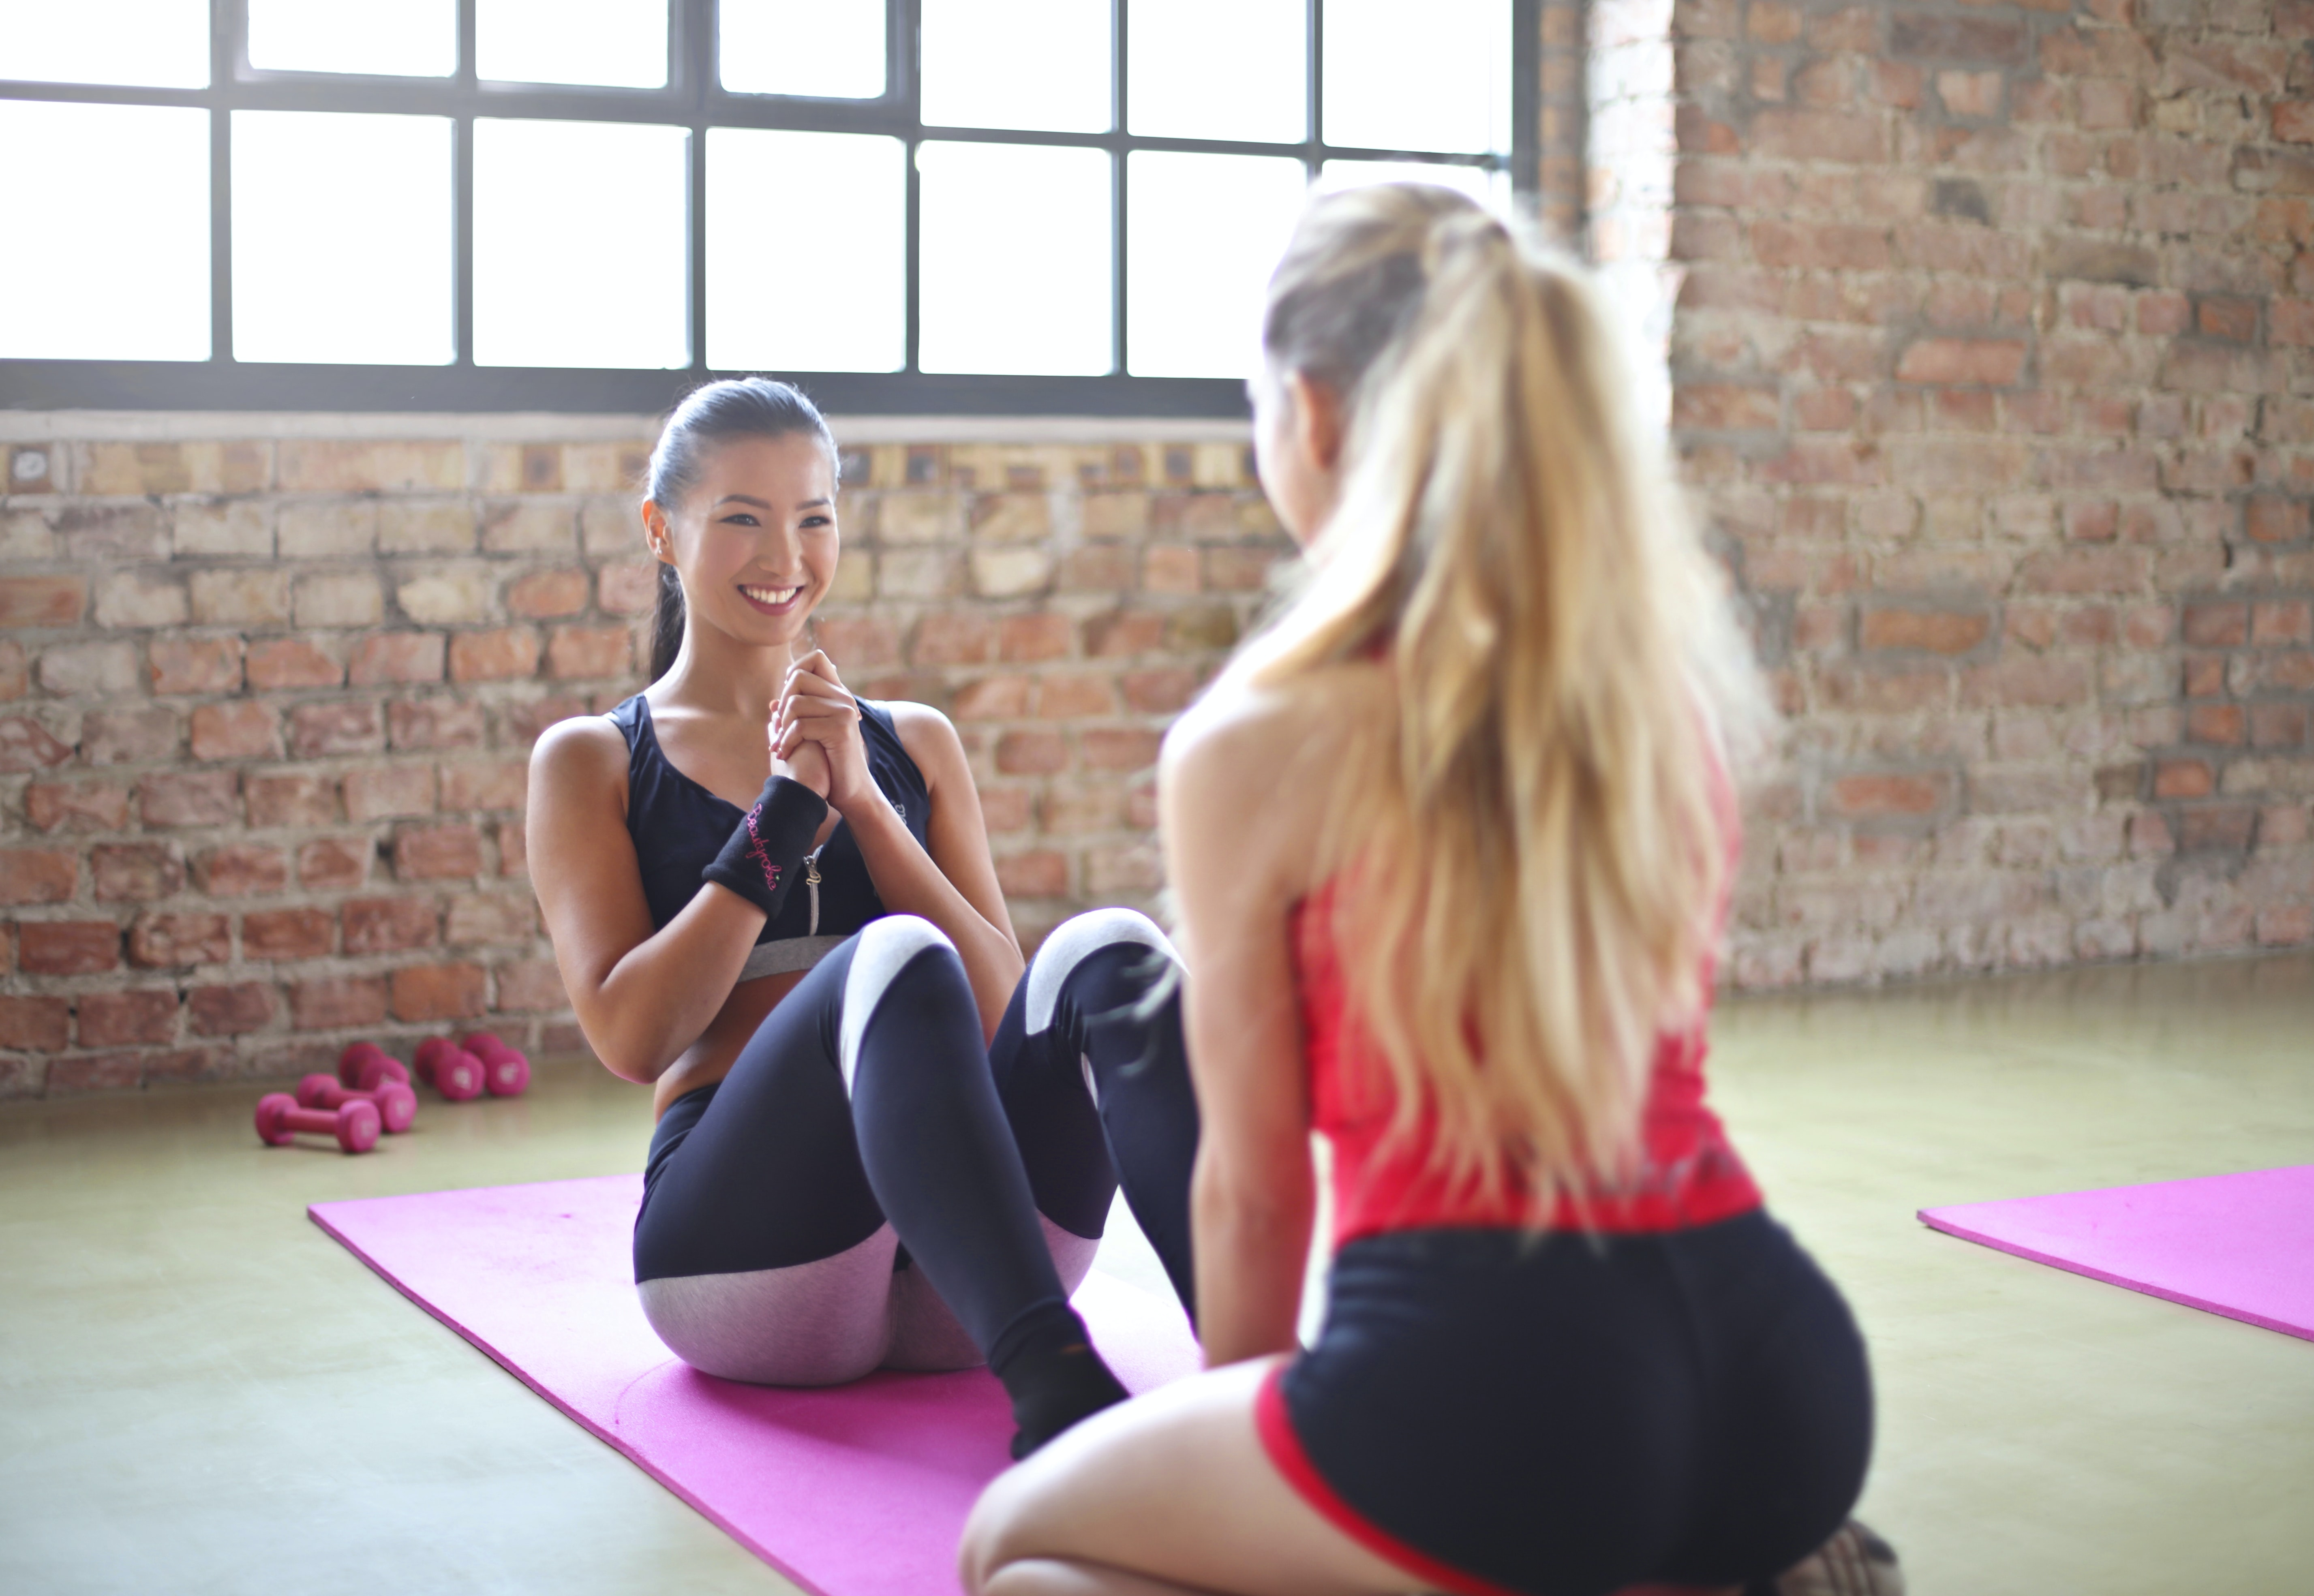 woman sitting on yoga mat with in front of girl during daytime